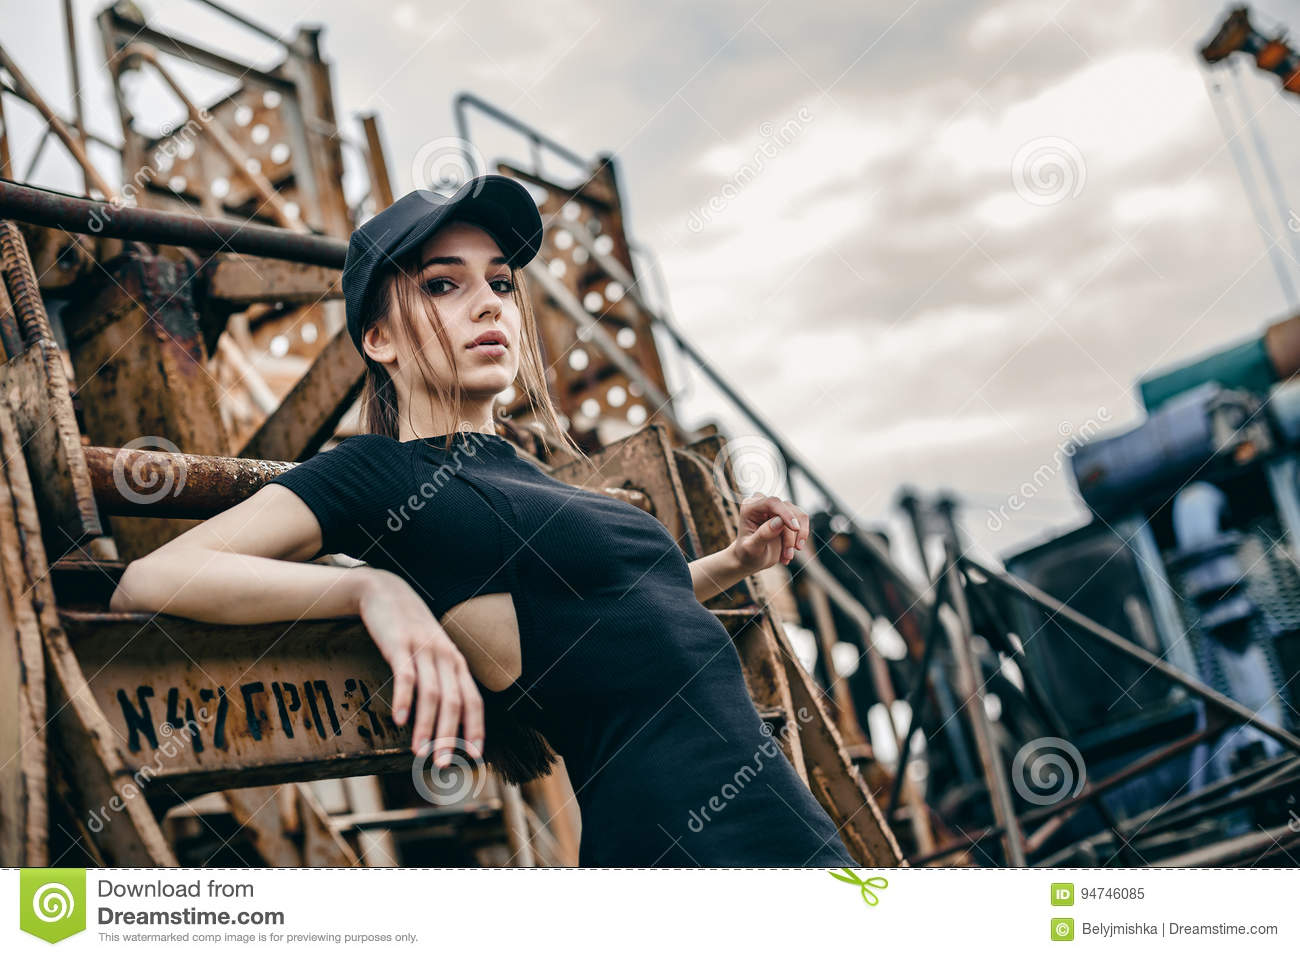 Closeup fashion portrait of hipster young tender woman in black cap